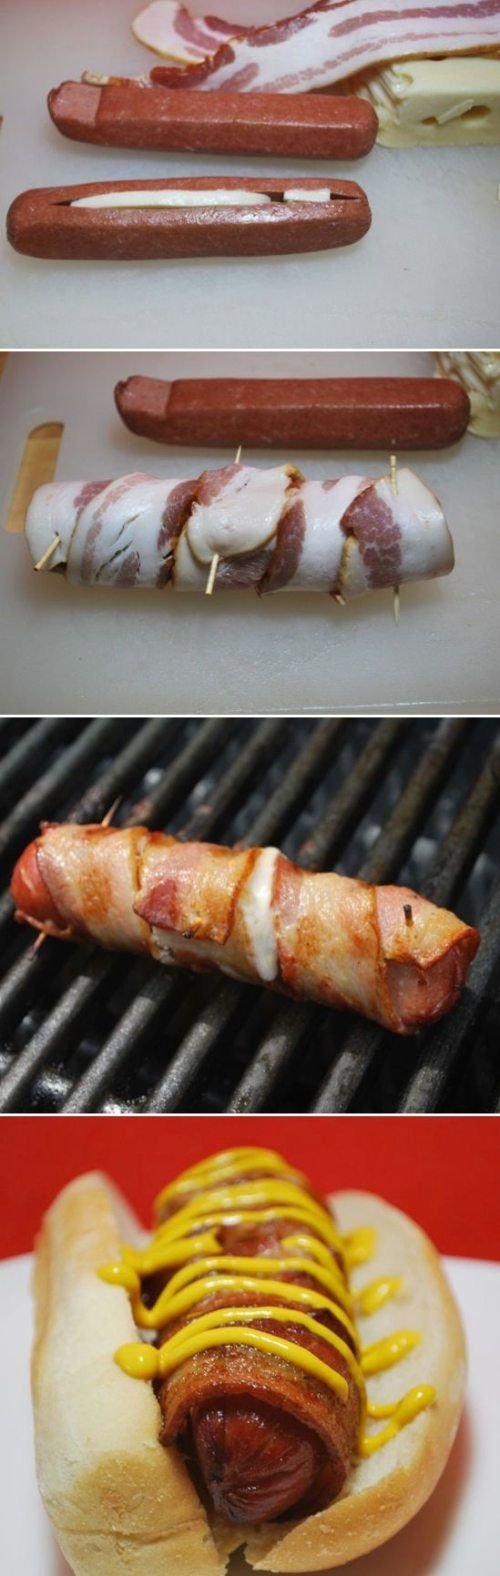 BBQ Bacon wrapped cheese stuffed hotdogs!! Best hotdog I've ever had. We only make them this way now. We put them on the Hawaiian hotdog buns.. It takes them to the next level! Yummm